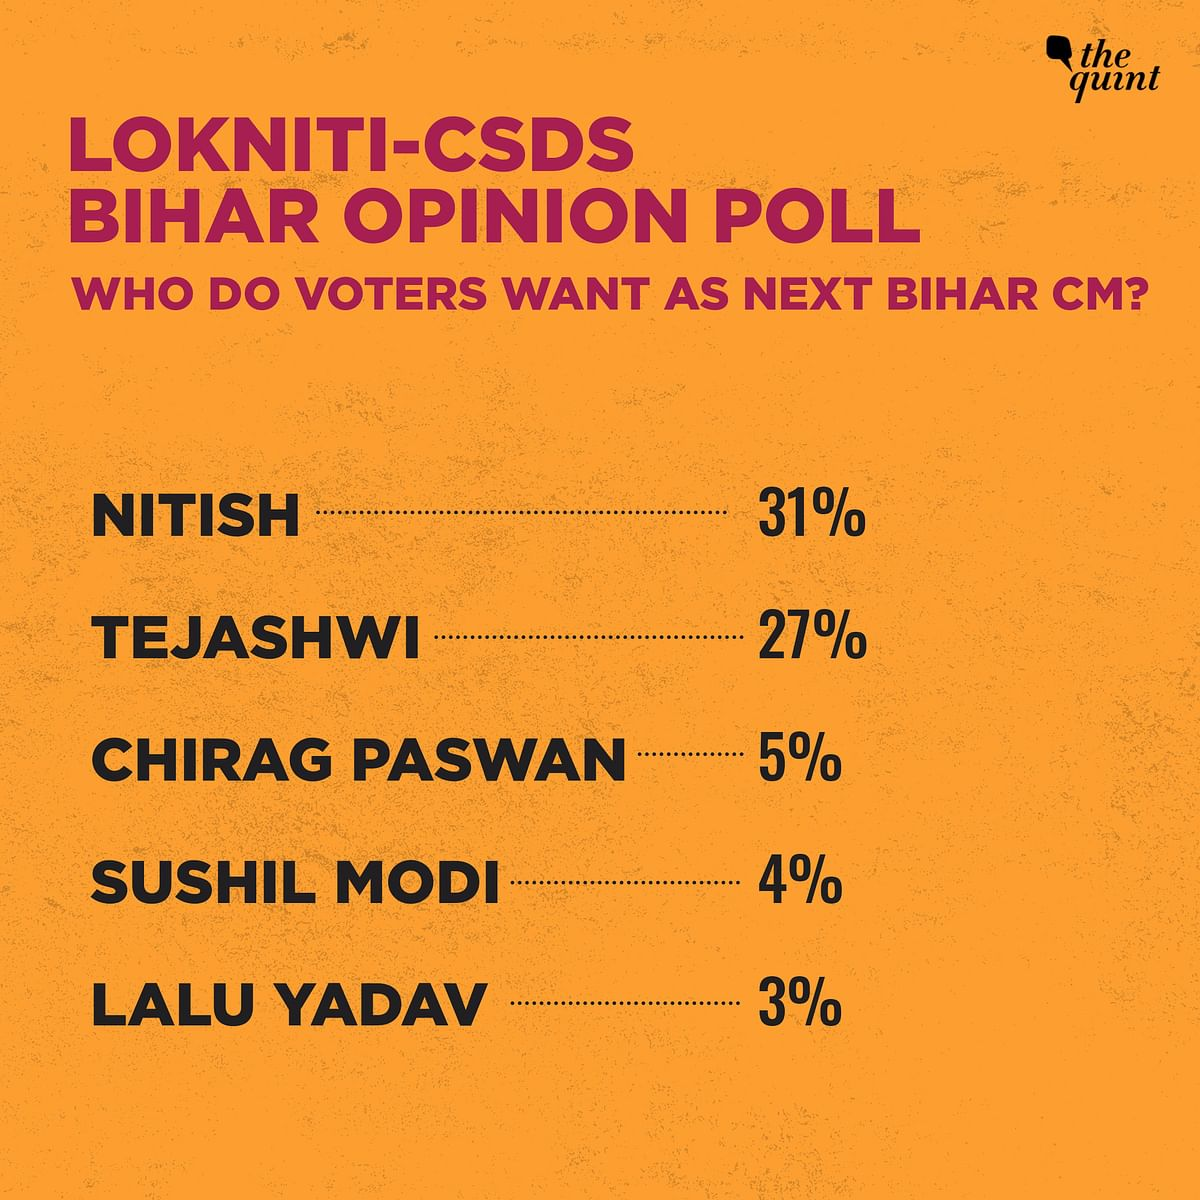 Who do voters want as next Bihar CM?